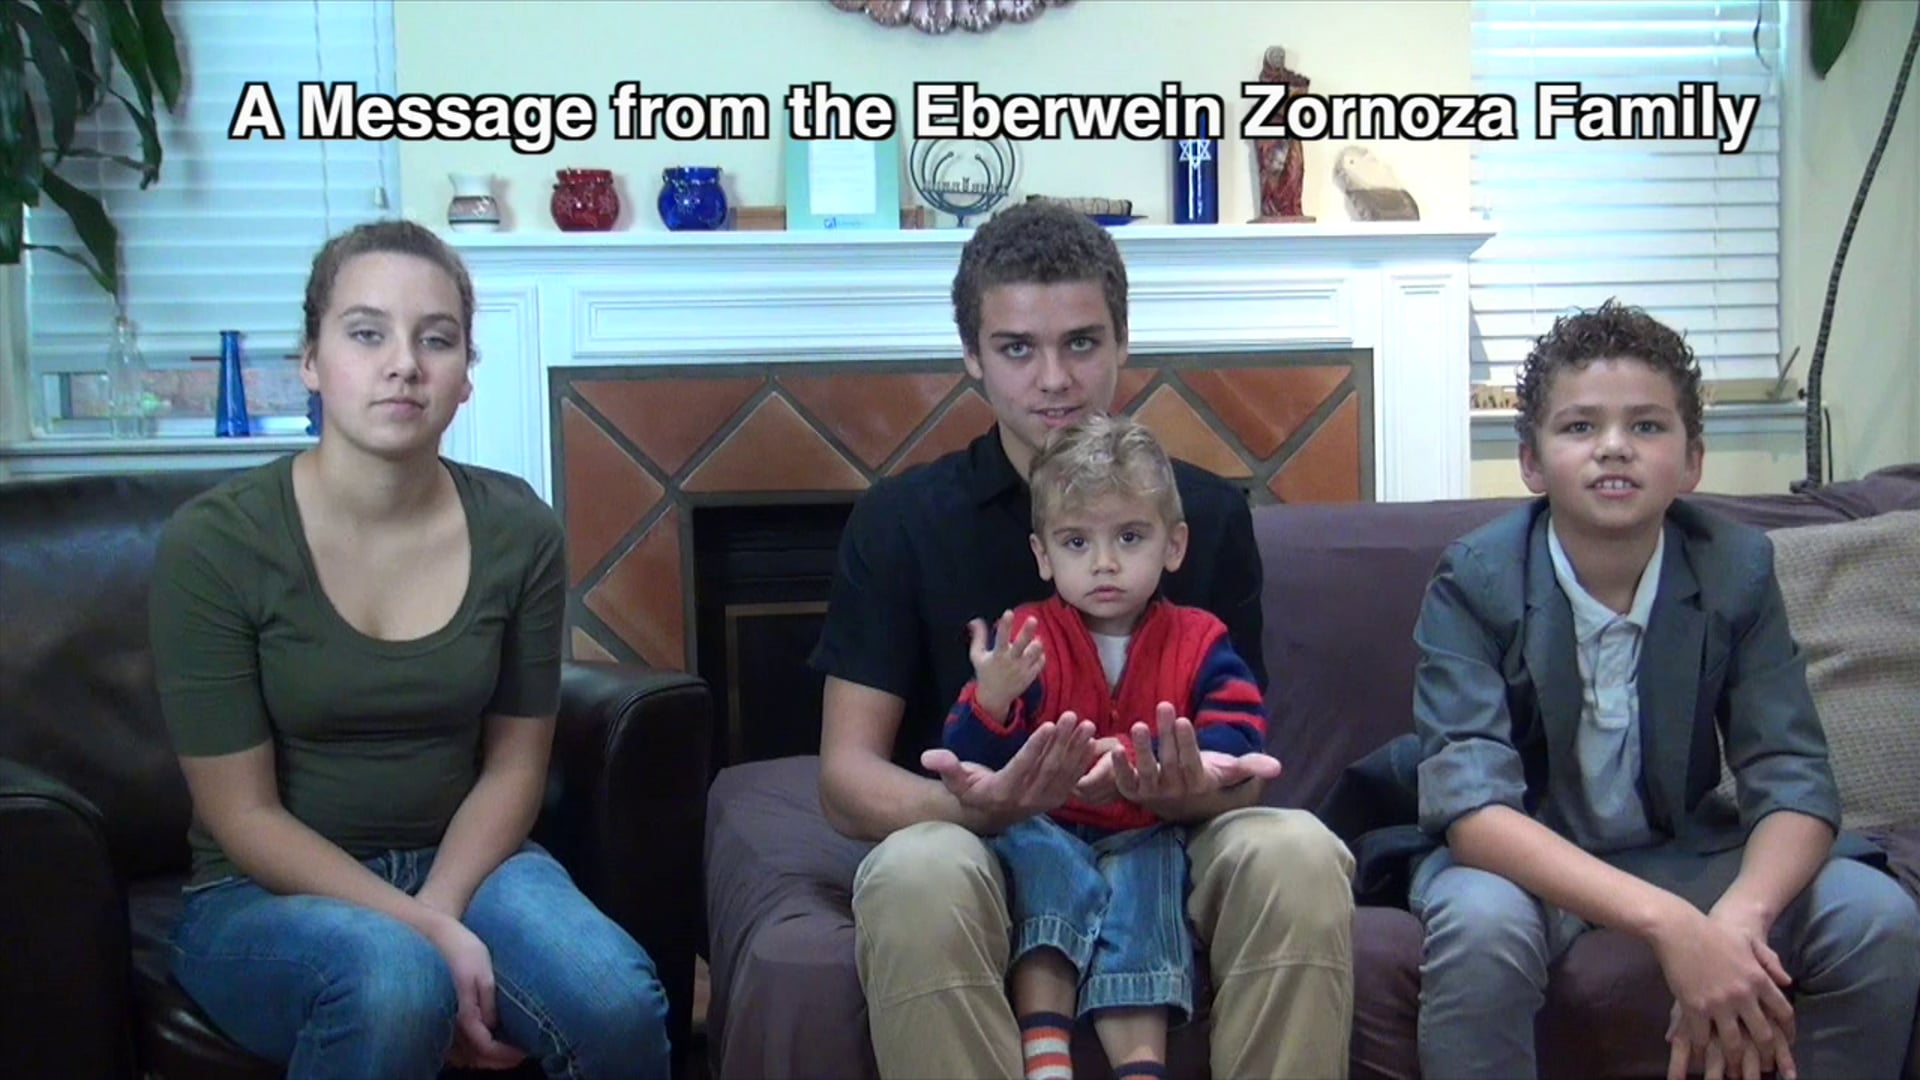 Year-End Appeal by the Eberwein-Zornoza Family